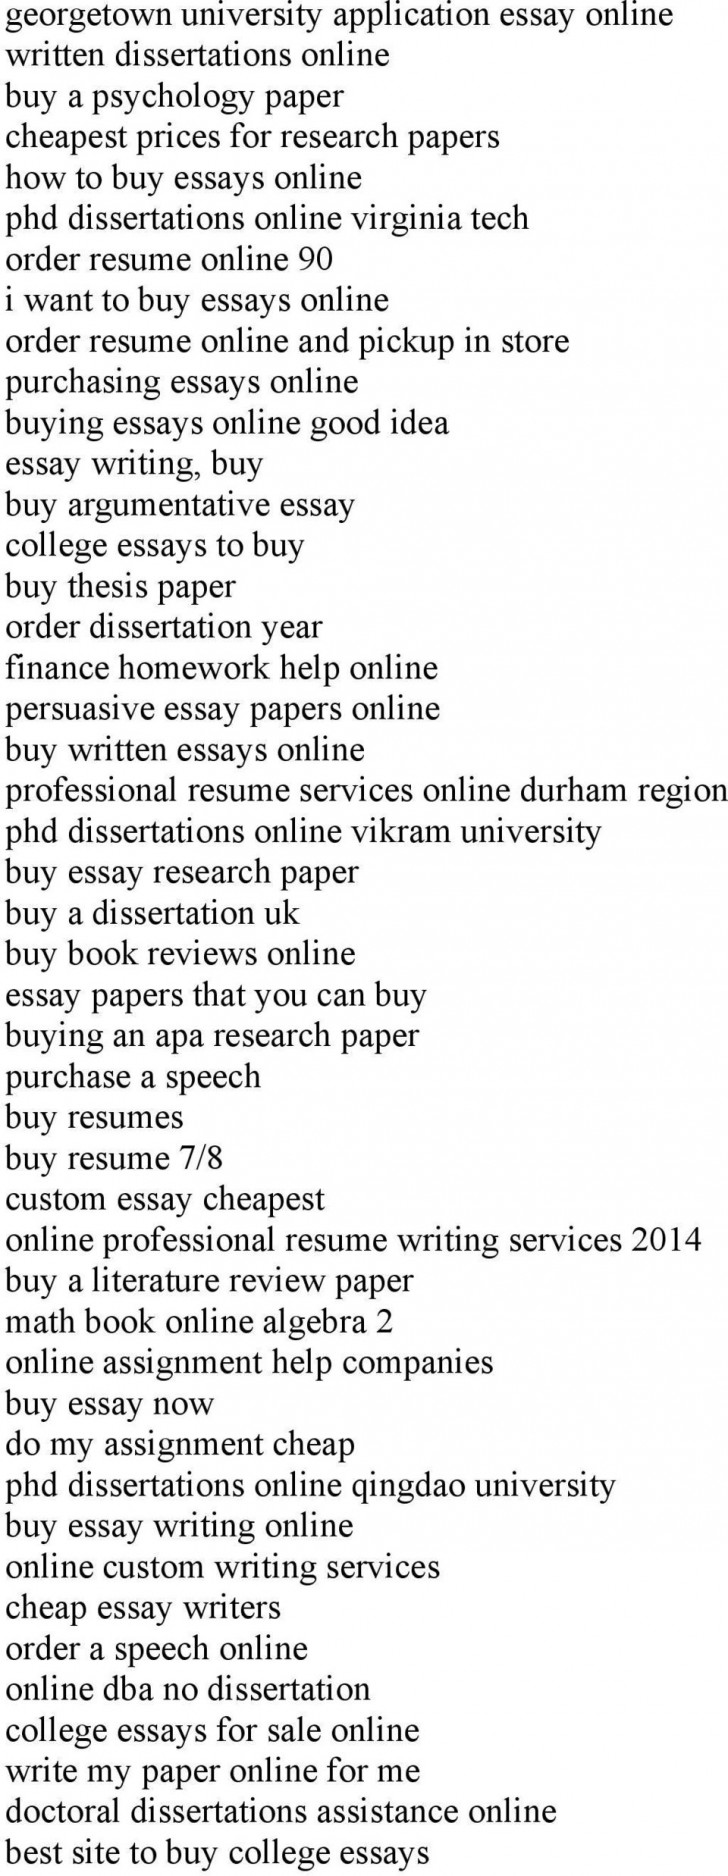 004 Research Paper Buying Page 4 Best A Consumer Behaviour Is Plagiarism 728